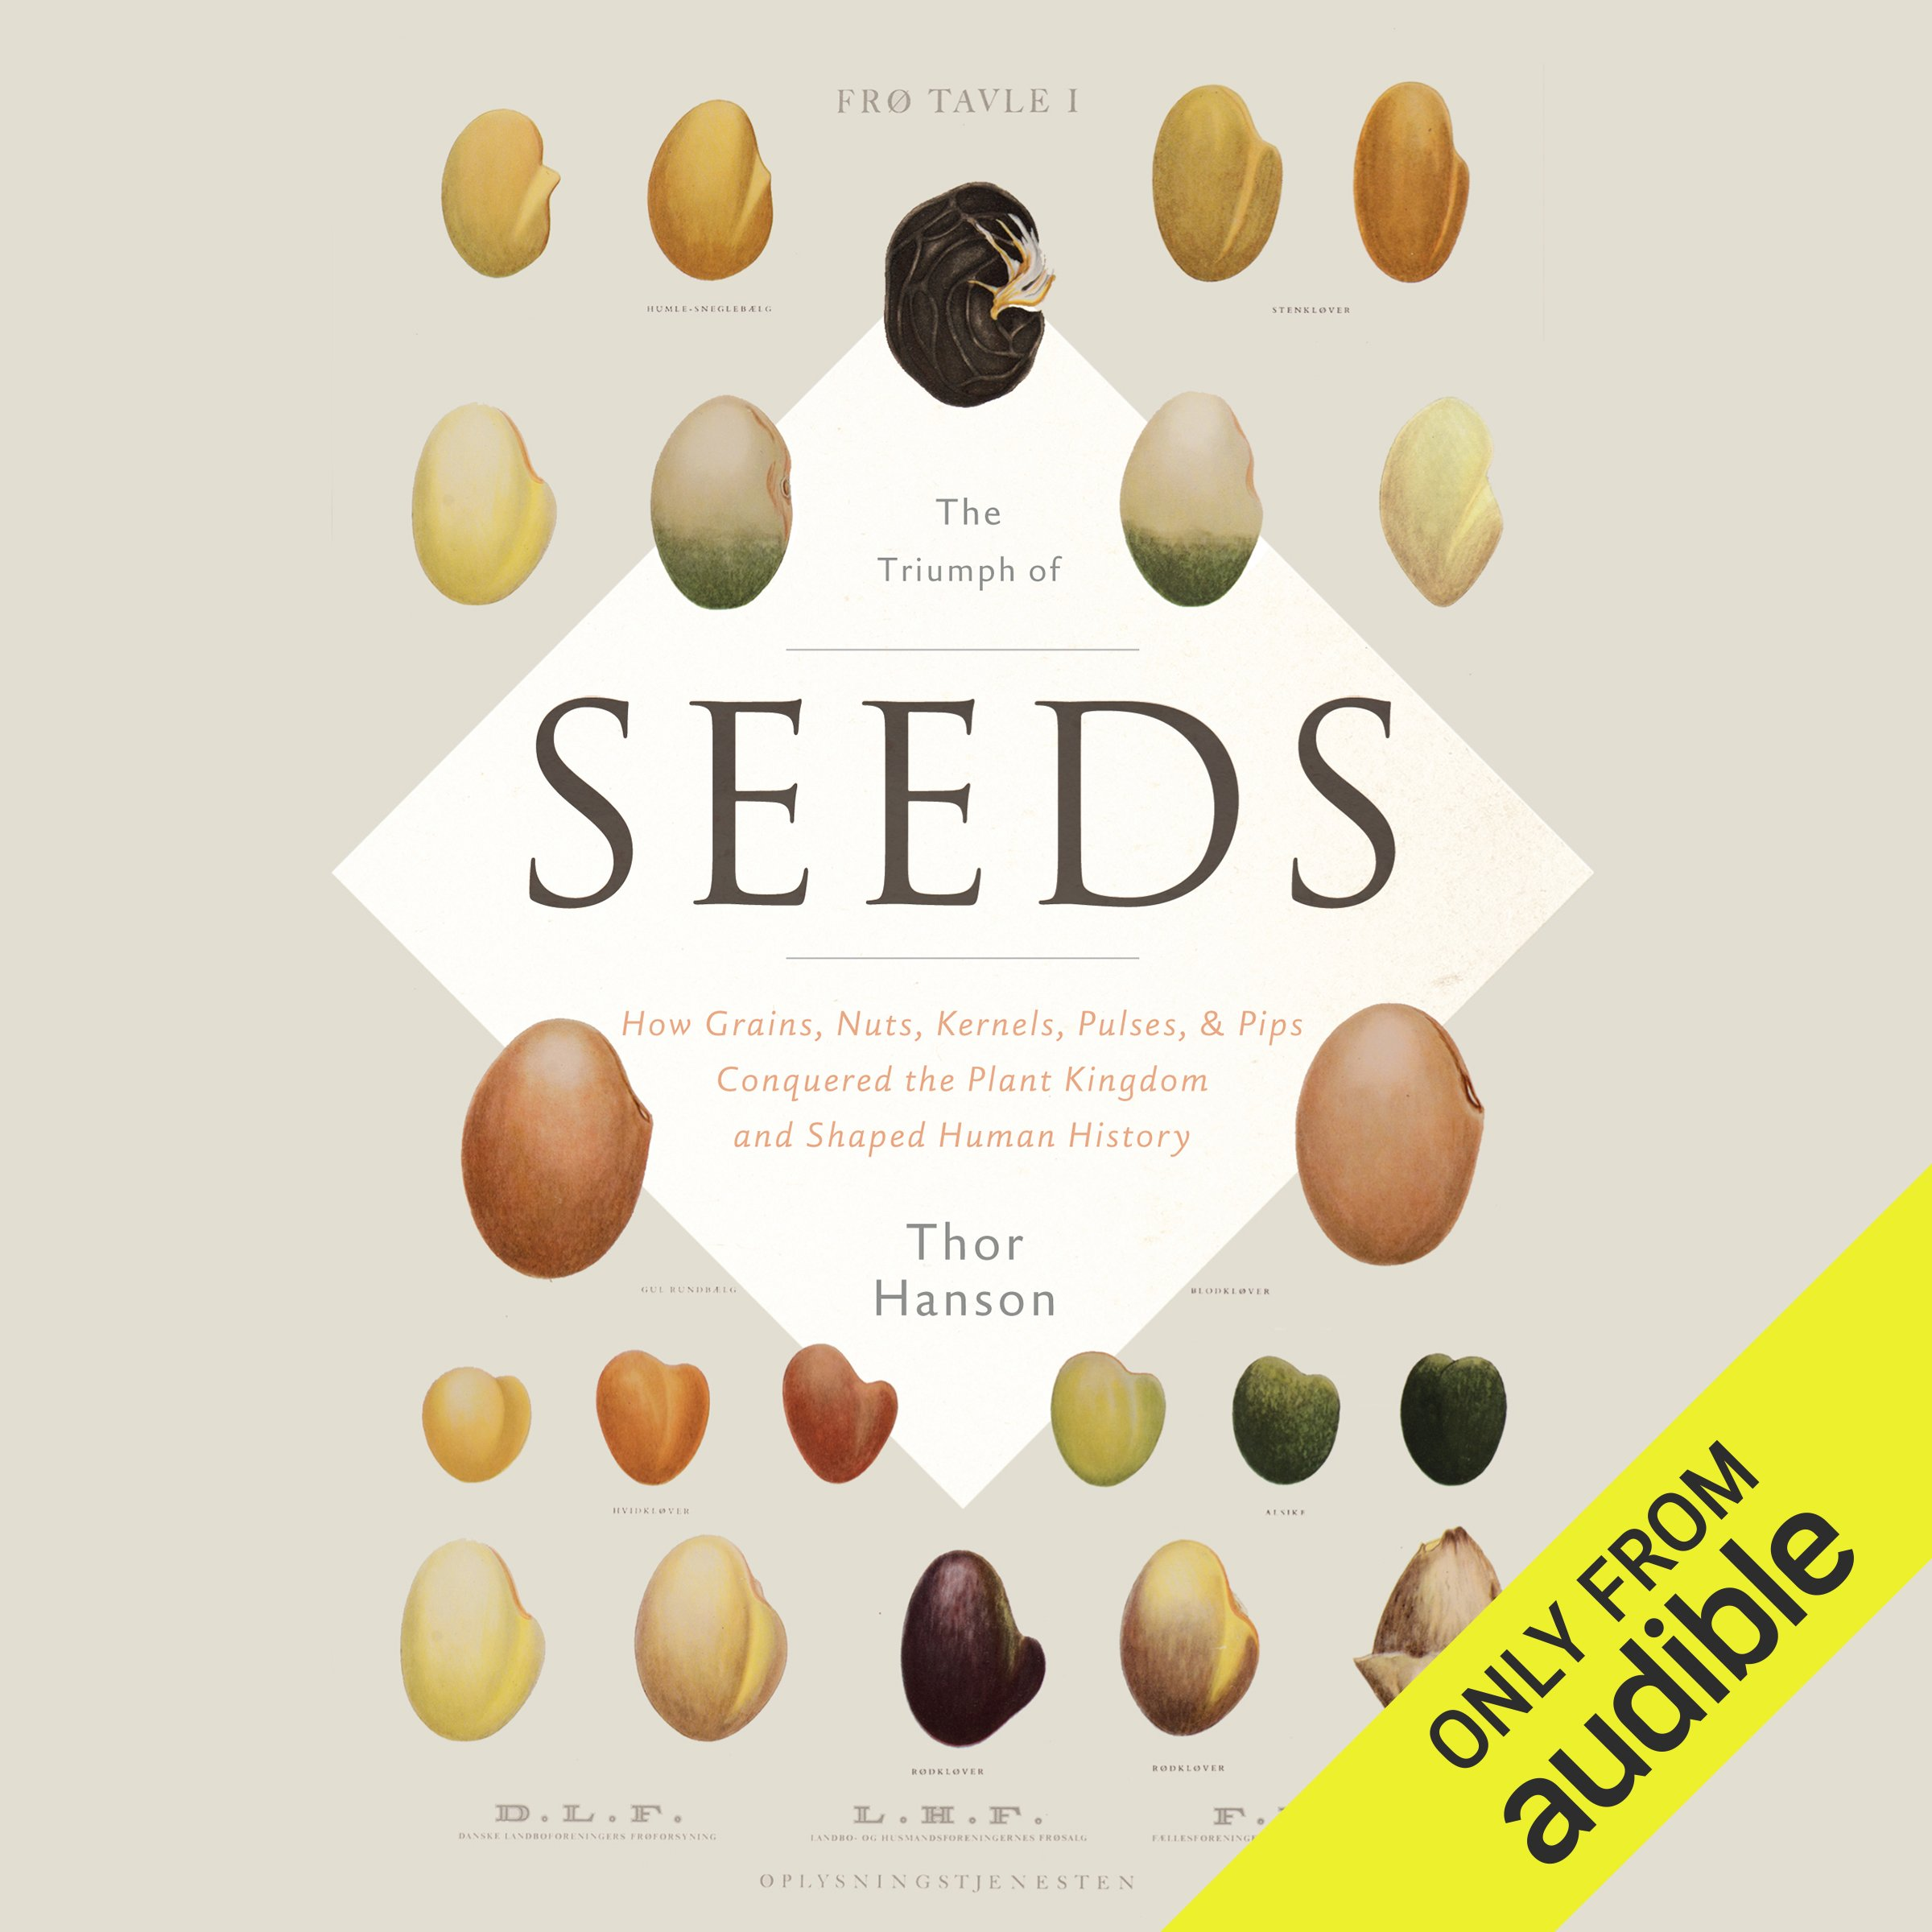 The Triumph of Seeds: How Grains, Nuts, Kernels, Pulses & Pips Conquered the Plant Kingdom and Shaped Human History